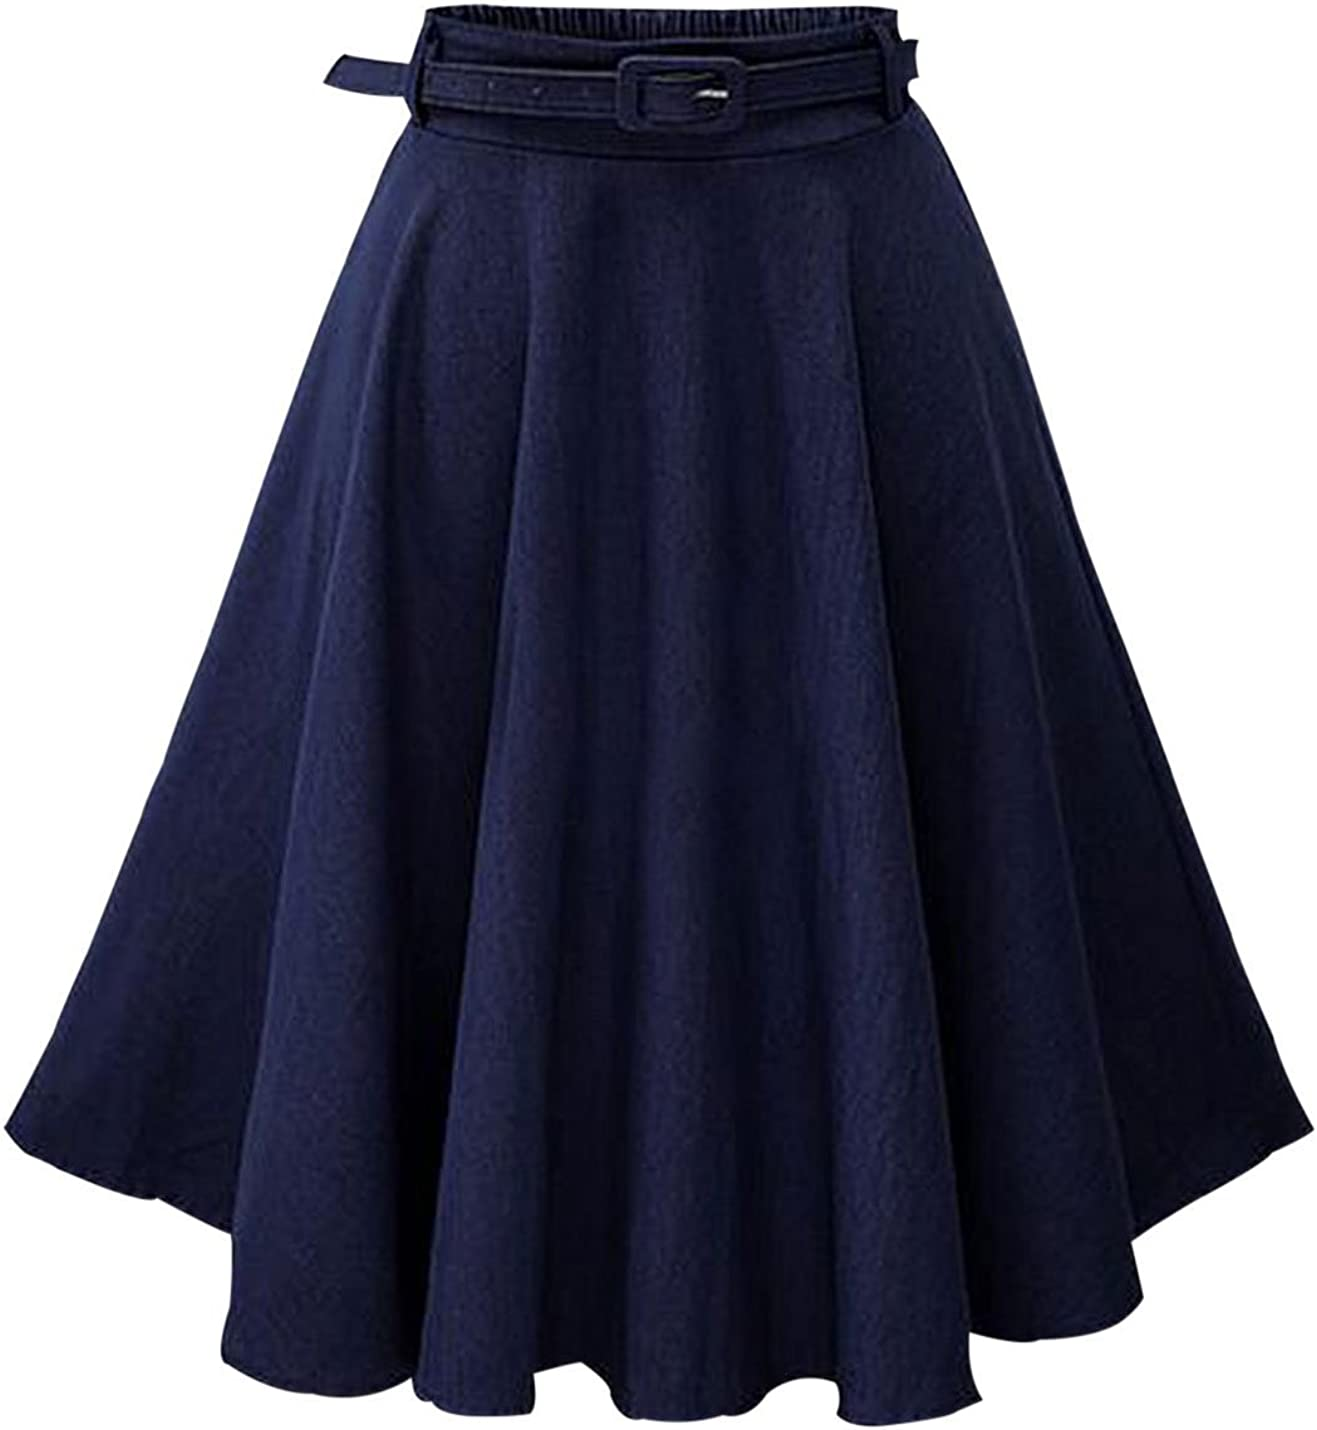 Yeokou Women's Casual Solid A Line Ruffle Pleated Belted Midi Long Denim Skirt